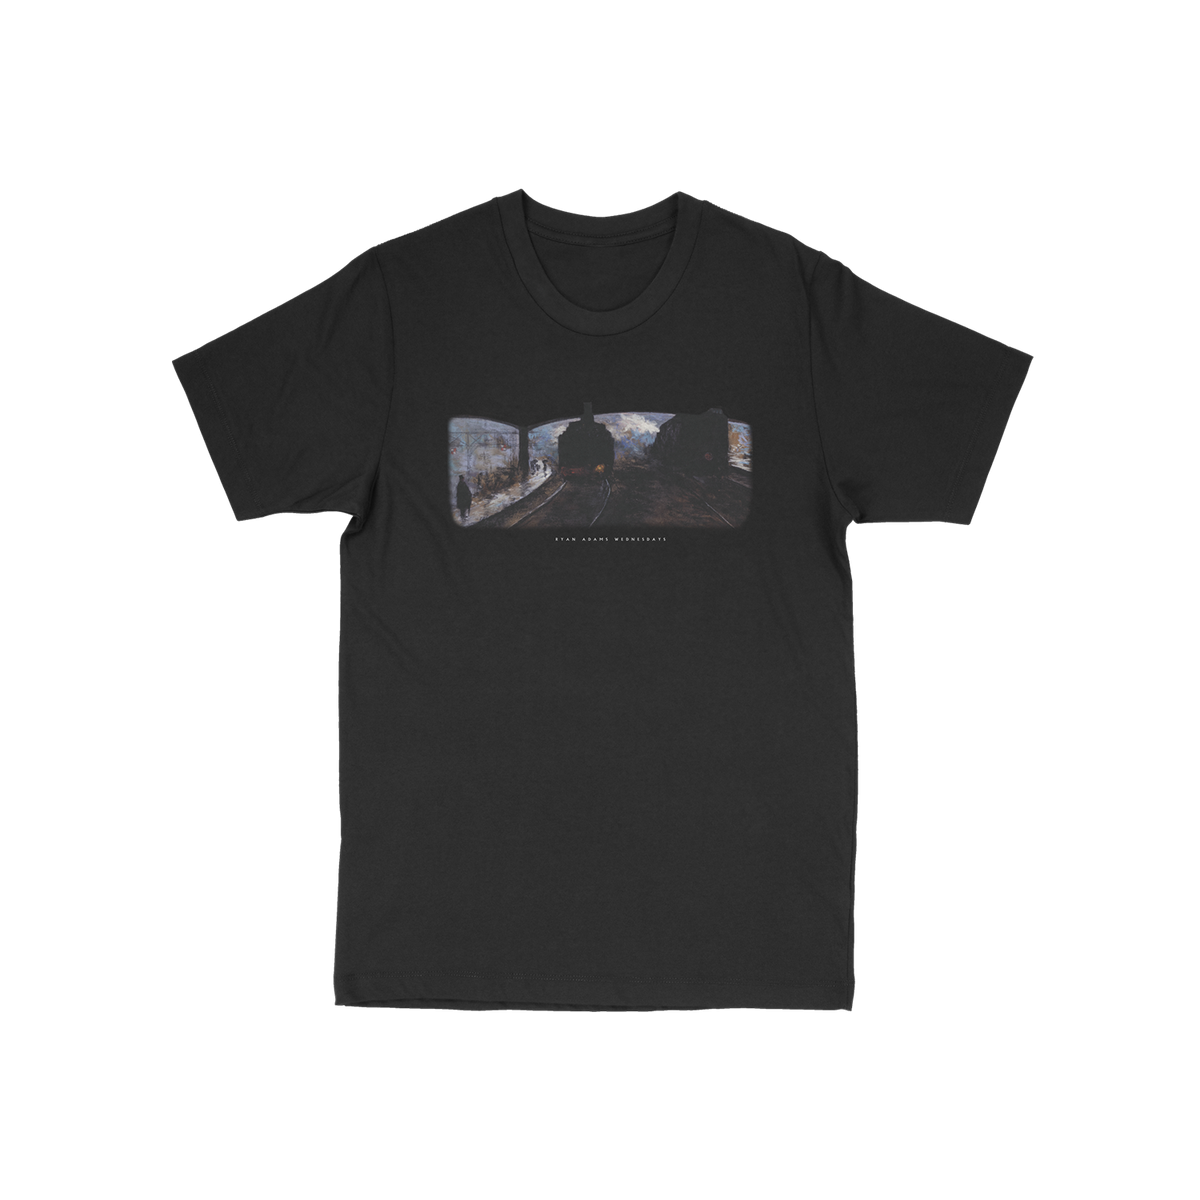 Ryan Adams Wednesdays Black Tee